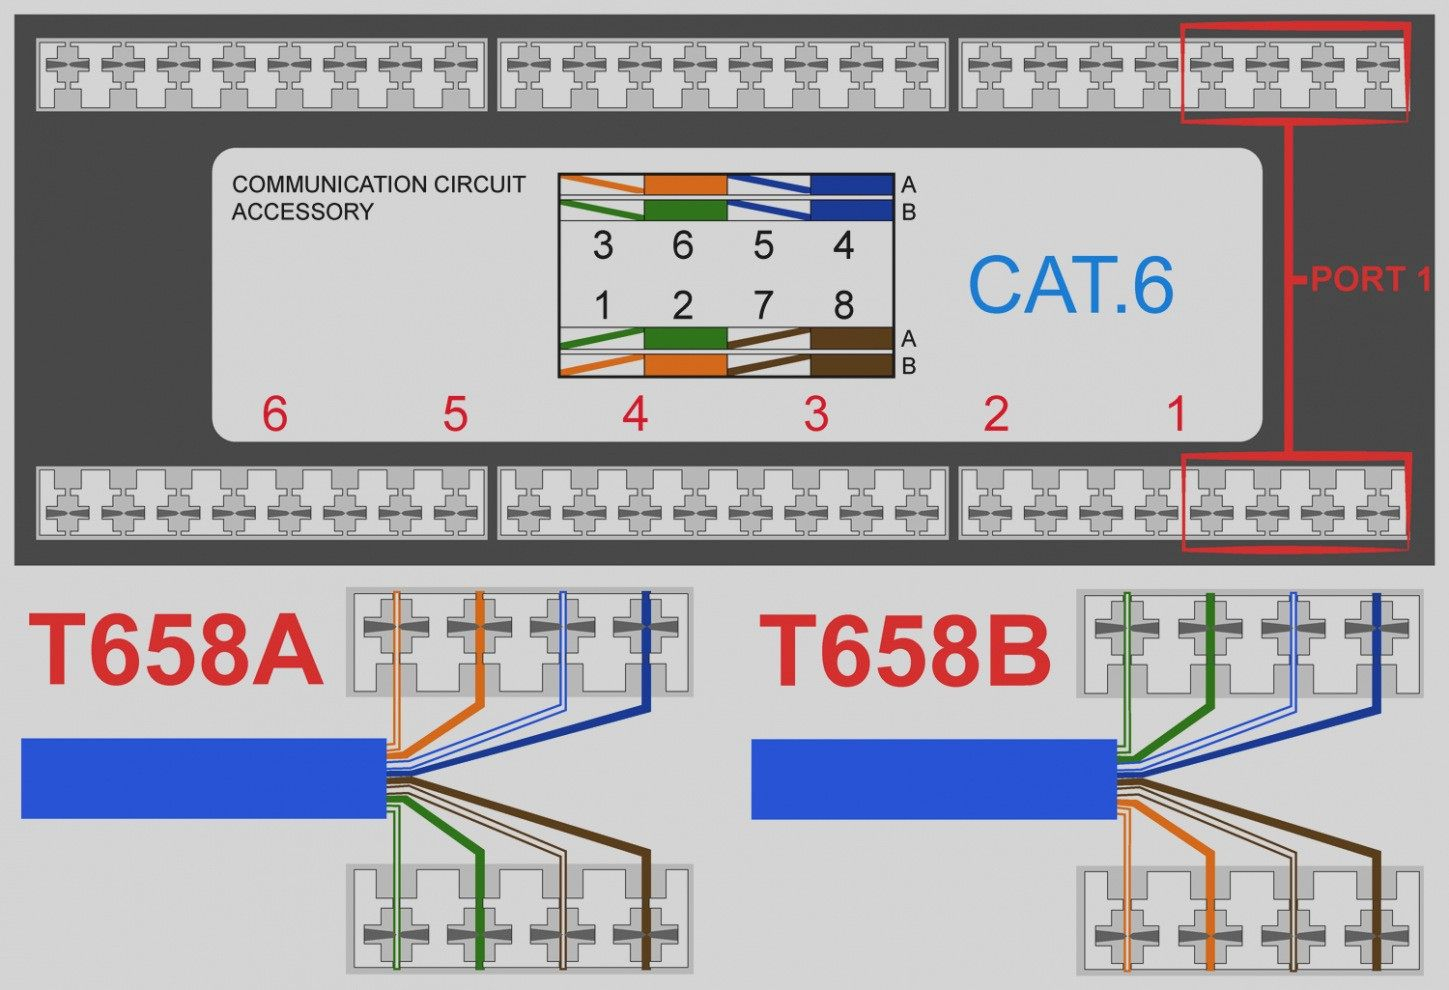 cat5 b wiring thegardenbar co uk \u2022cat5e diagram a or b 7 20 malawi24 de u2022 rh 7 20 malawi24 de cat 5 type b wiring cat5 b wiring